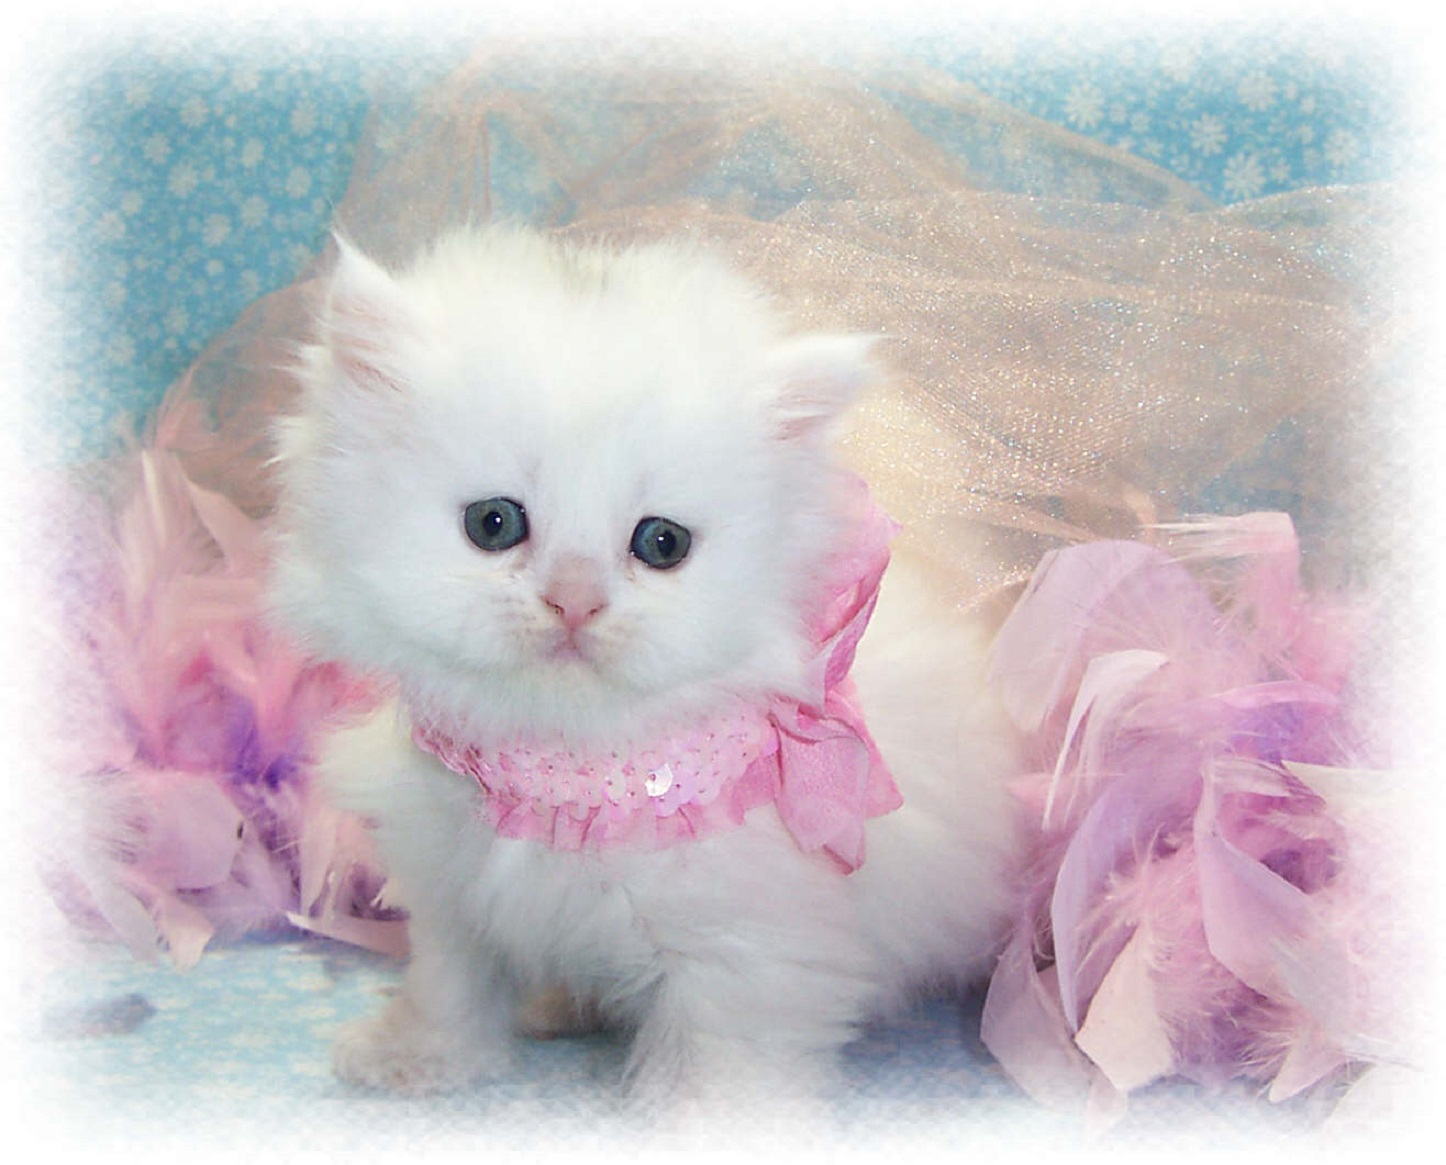 Beautiful Kittens Cute Cat Images Wallpapers Free Download